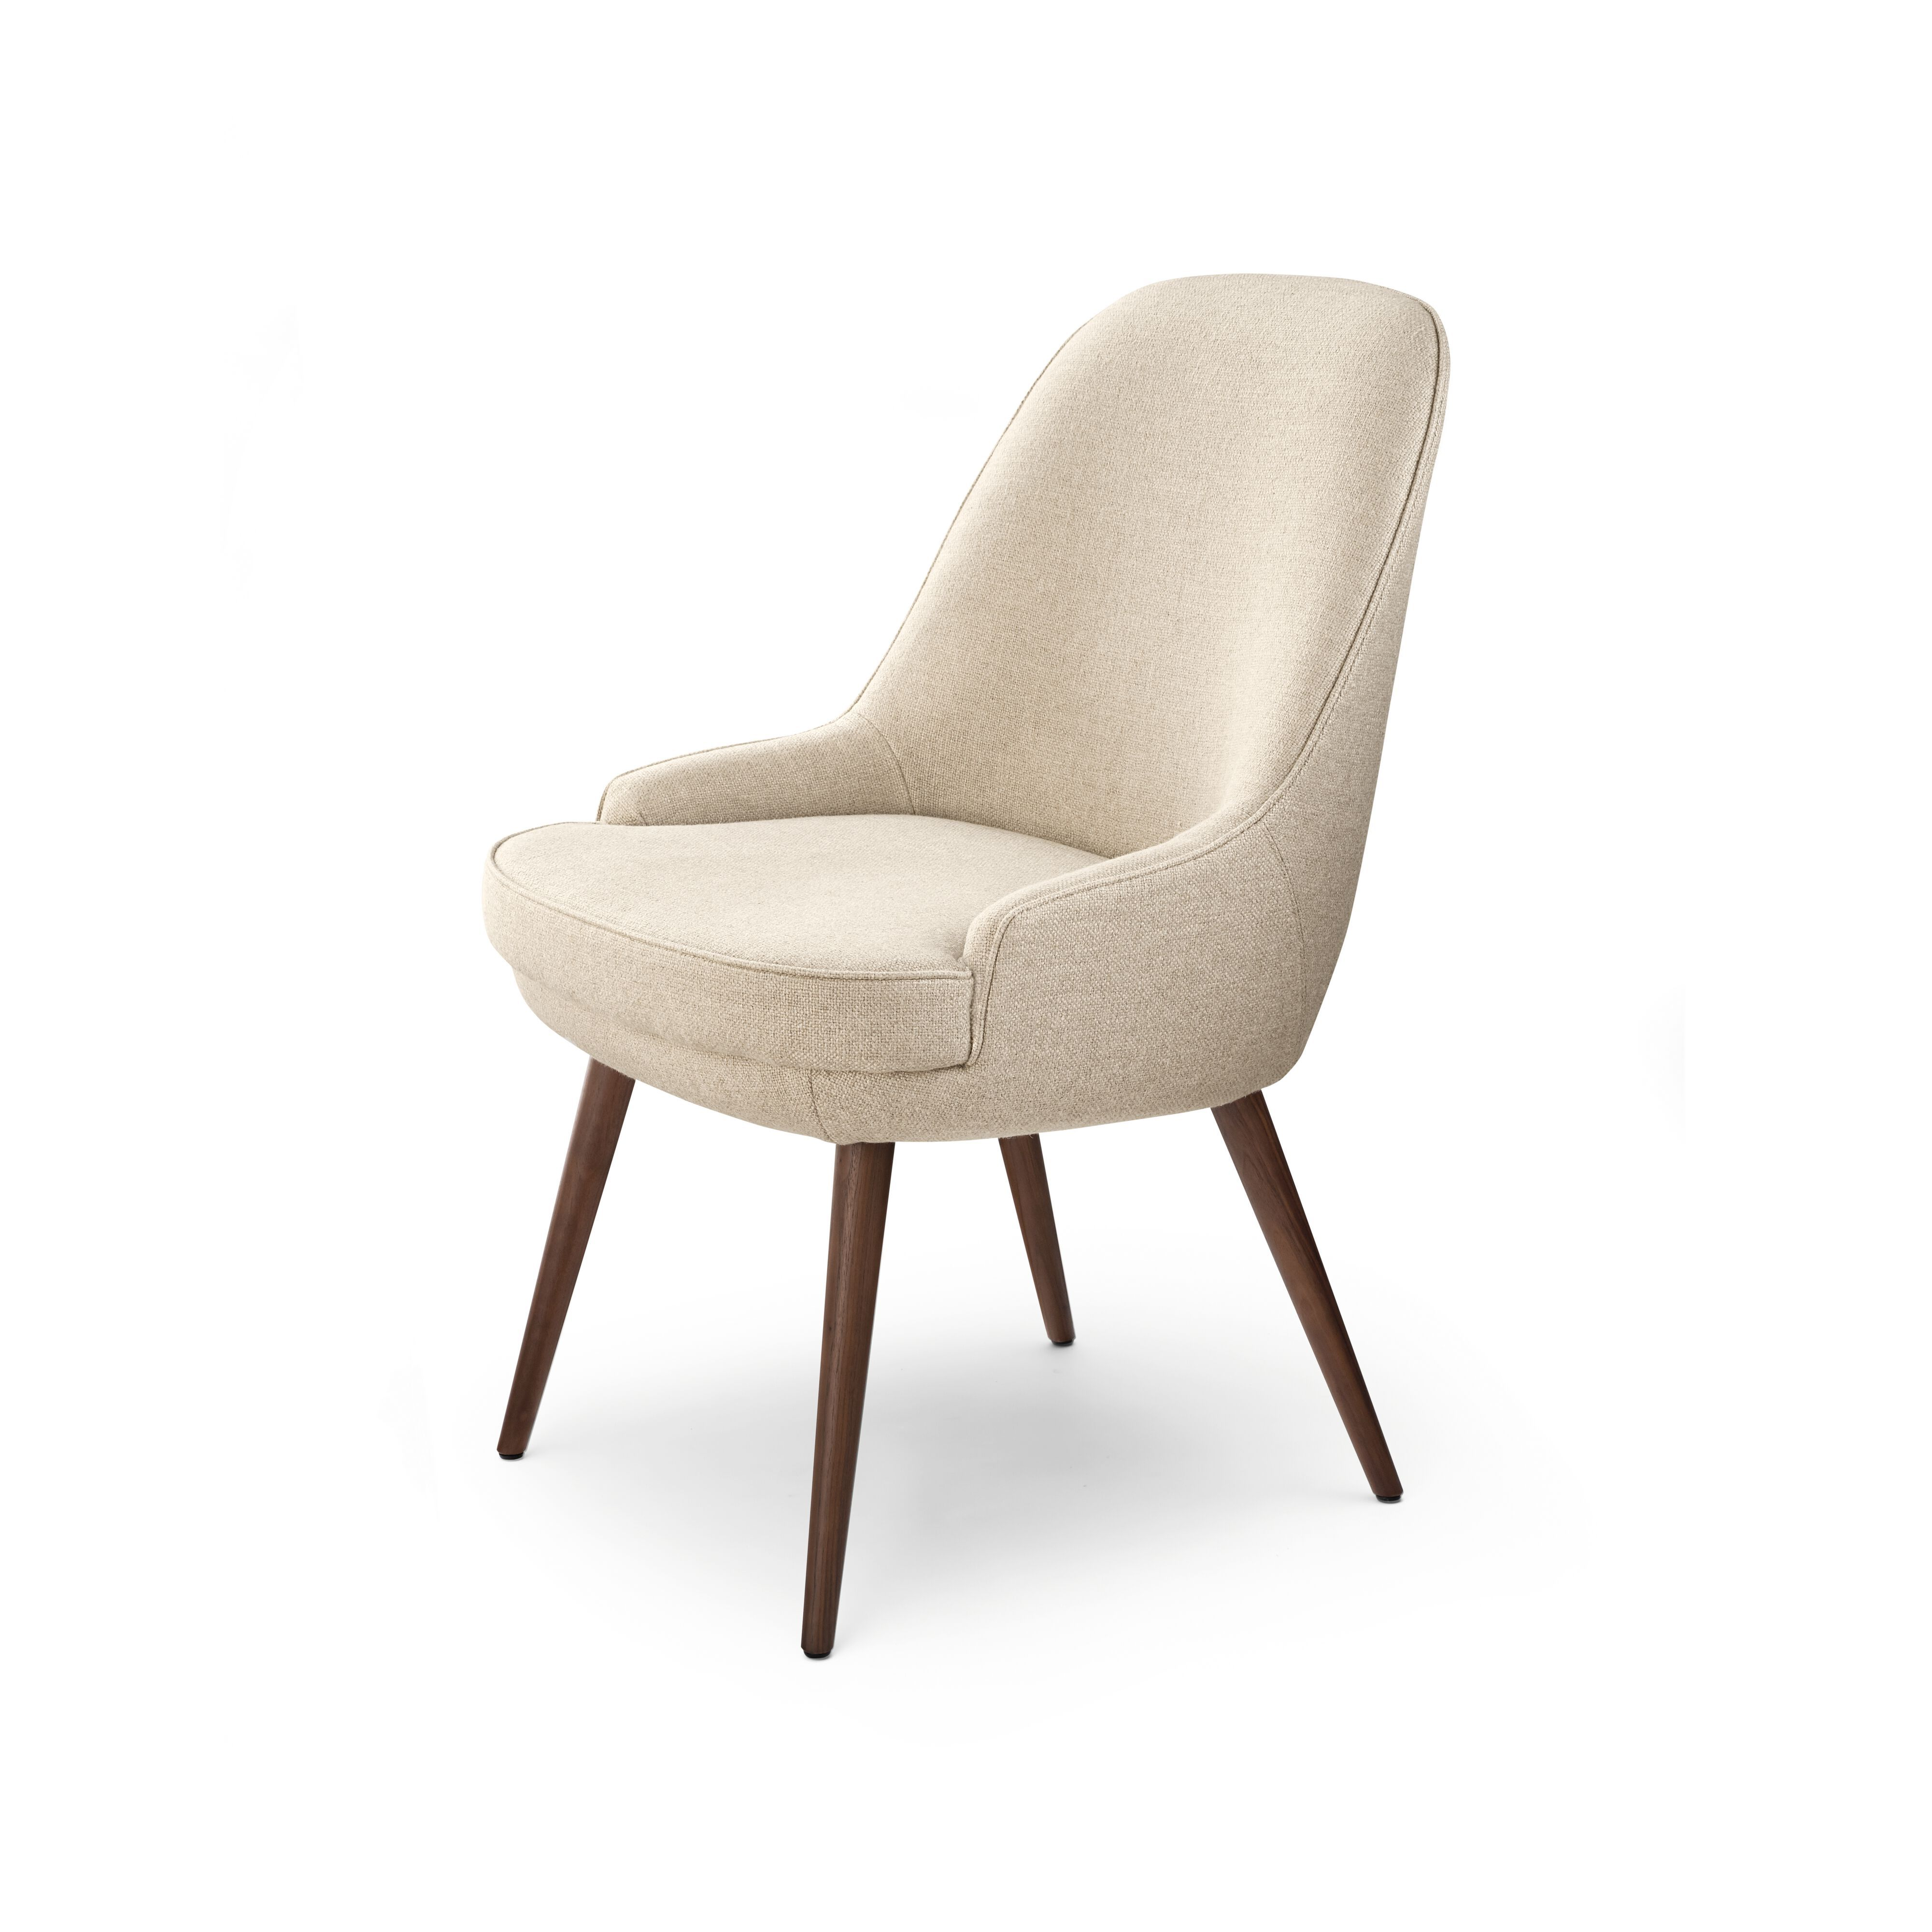 08_WK-375_Chair-Modell-1375-Dining-Chair-0001-H.tif